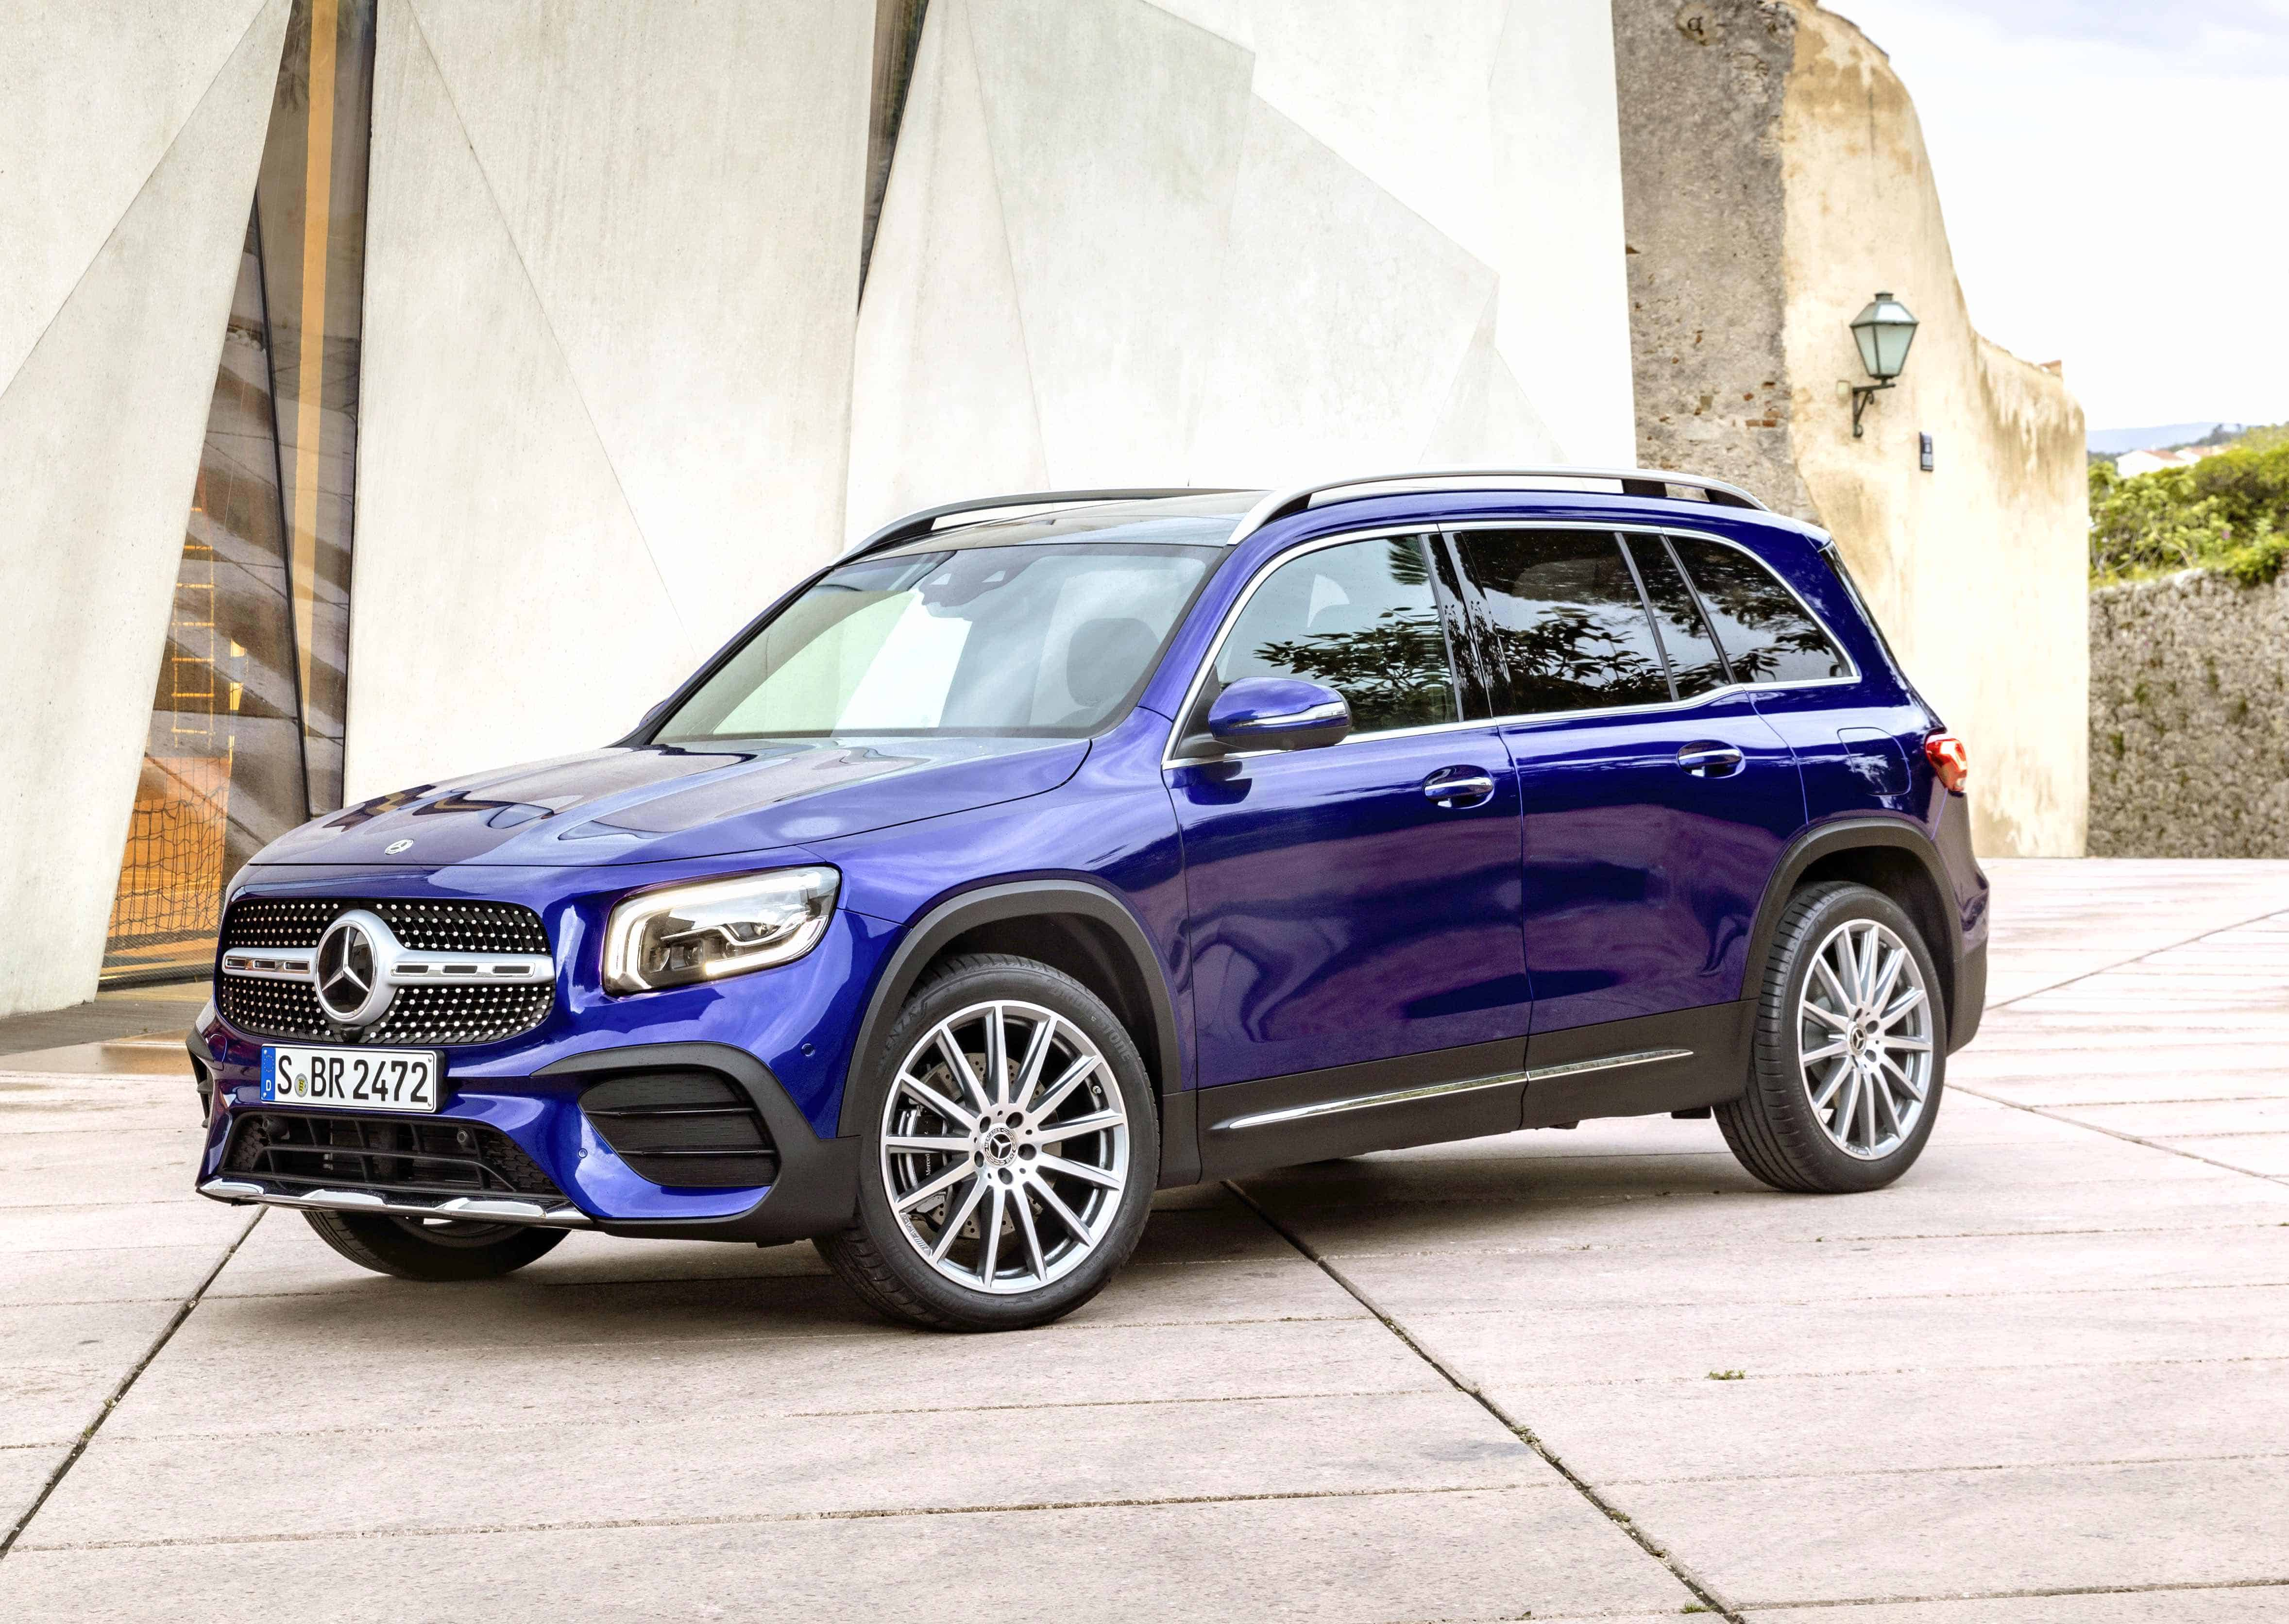 The new Mercedes-Benz GLB compact SUV